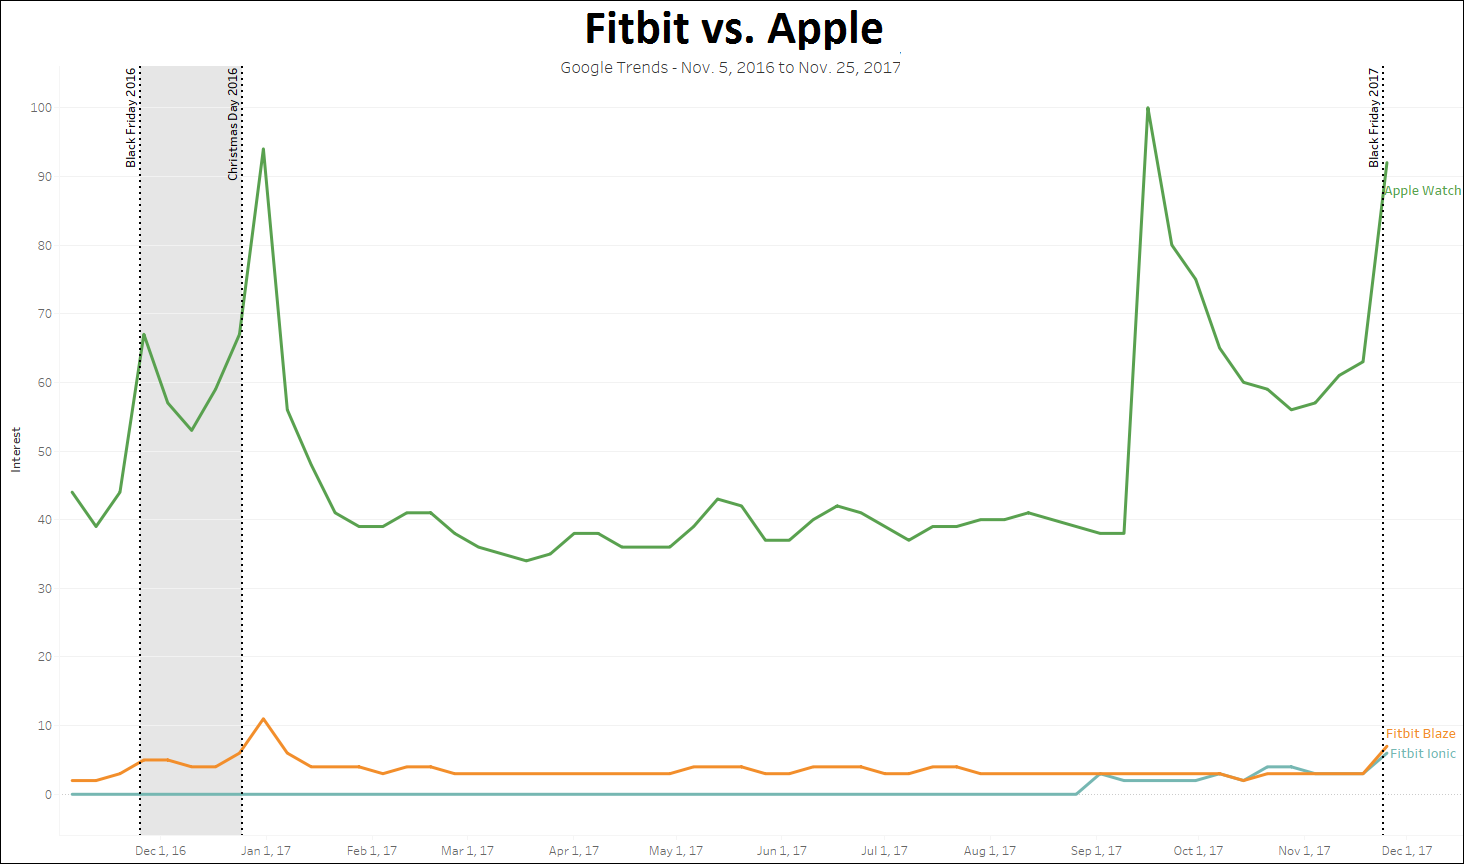 The popularity of Apple continues to outpace Fitbit thanks to the introduction of a new Apple Watch and reduced prices on previous versions in September 2017.png